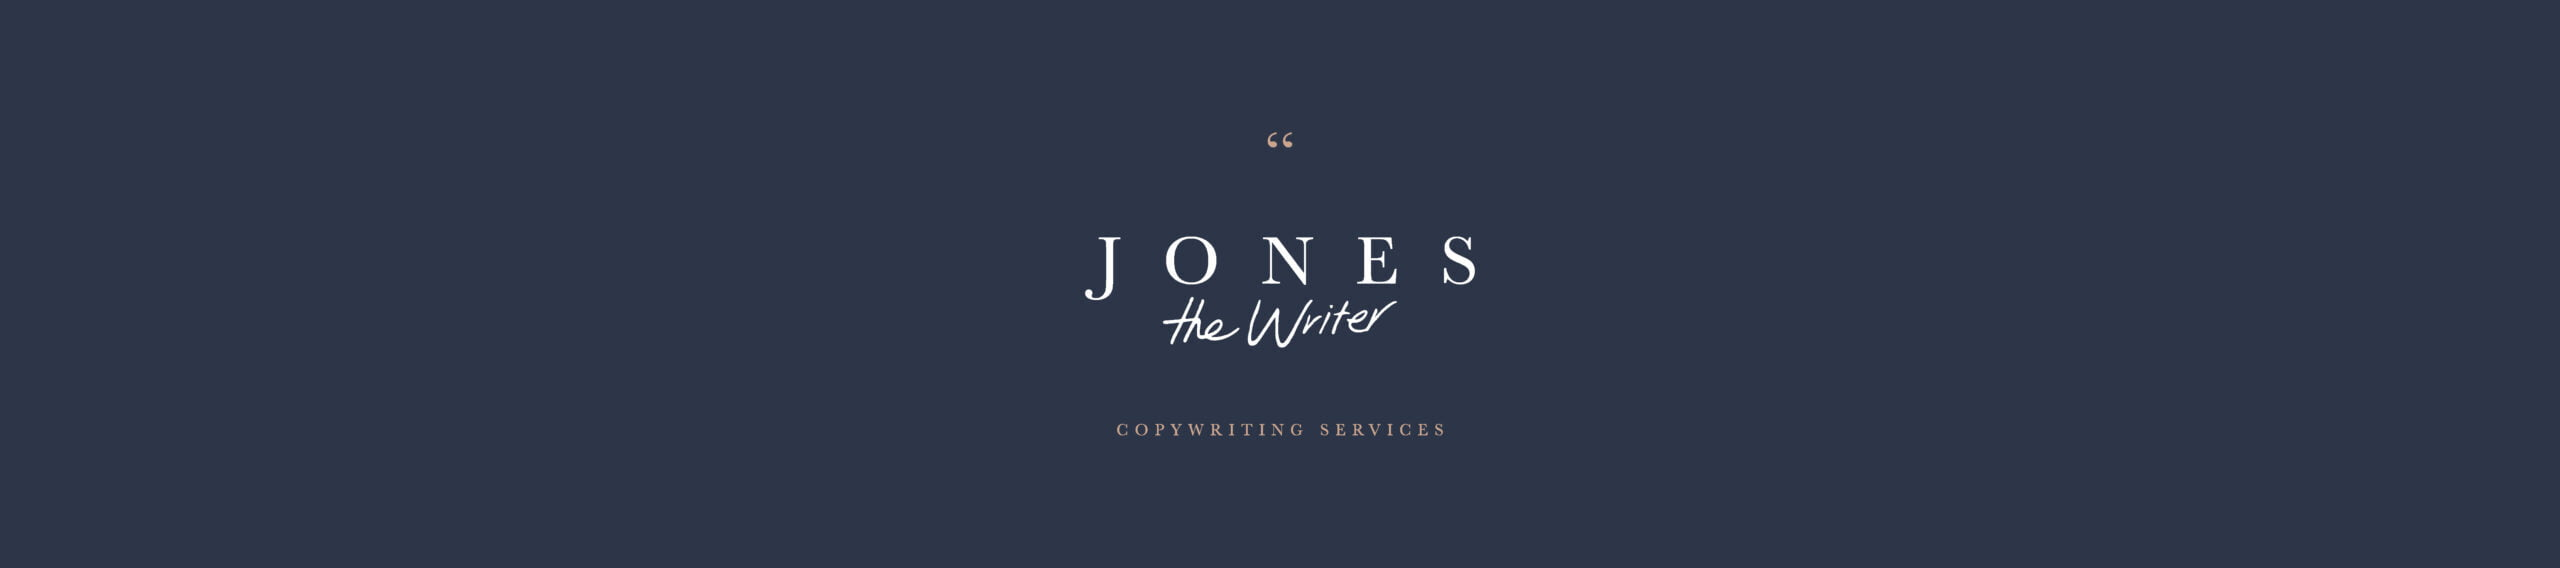 Jones the Writer Copywriting Services